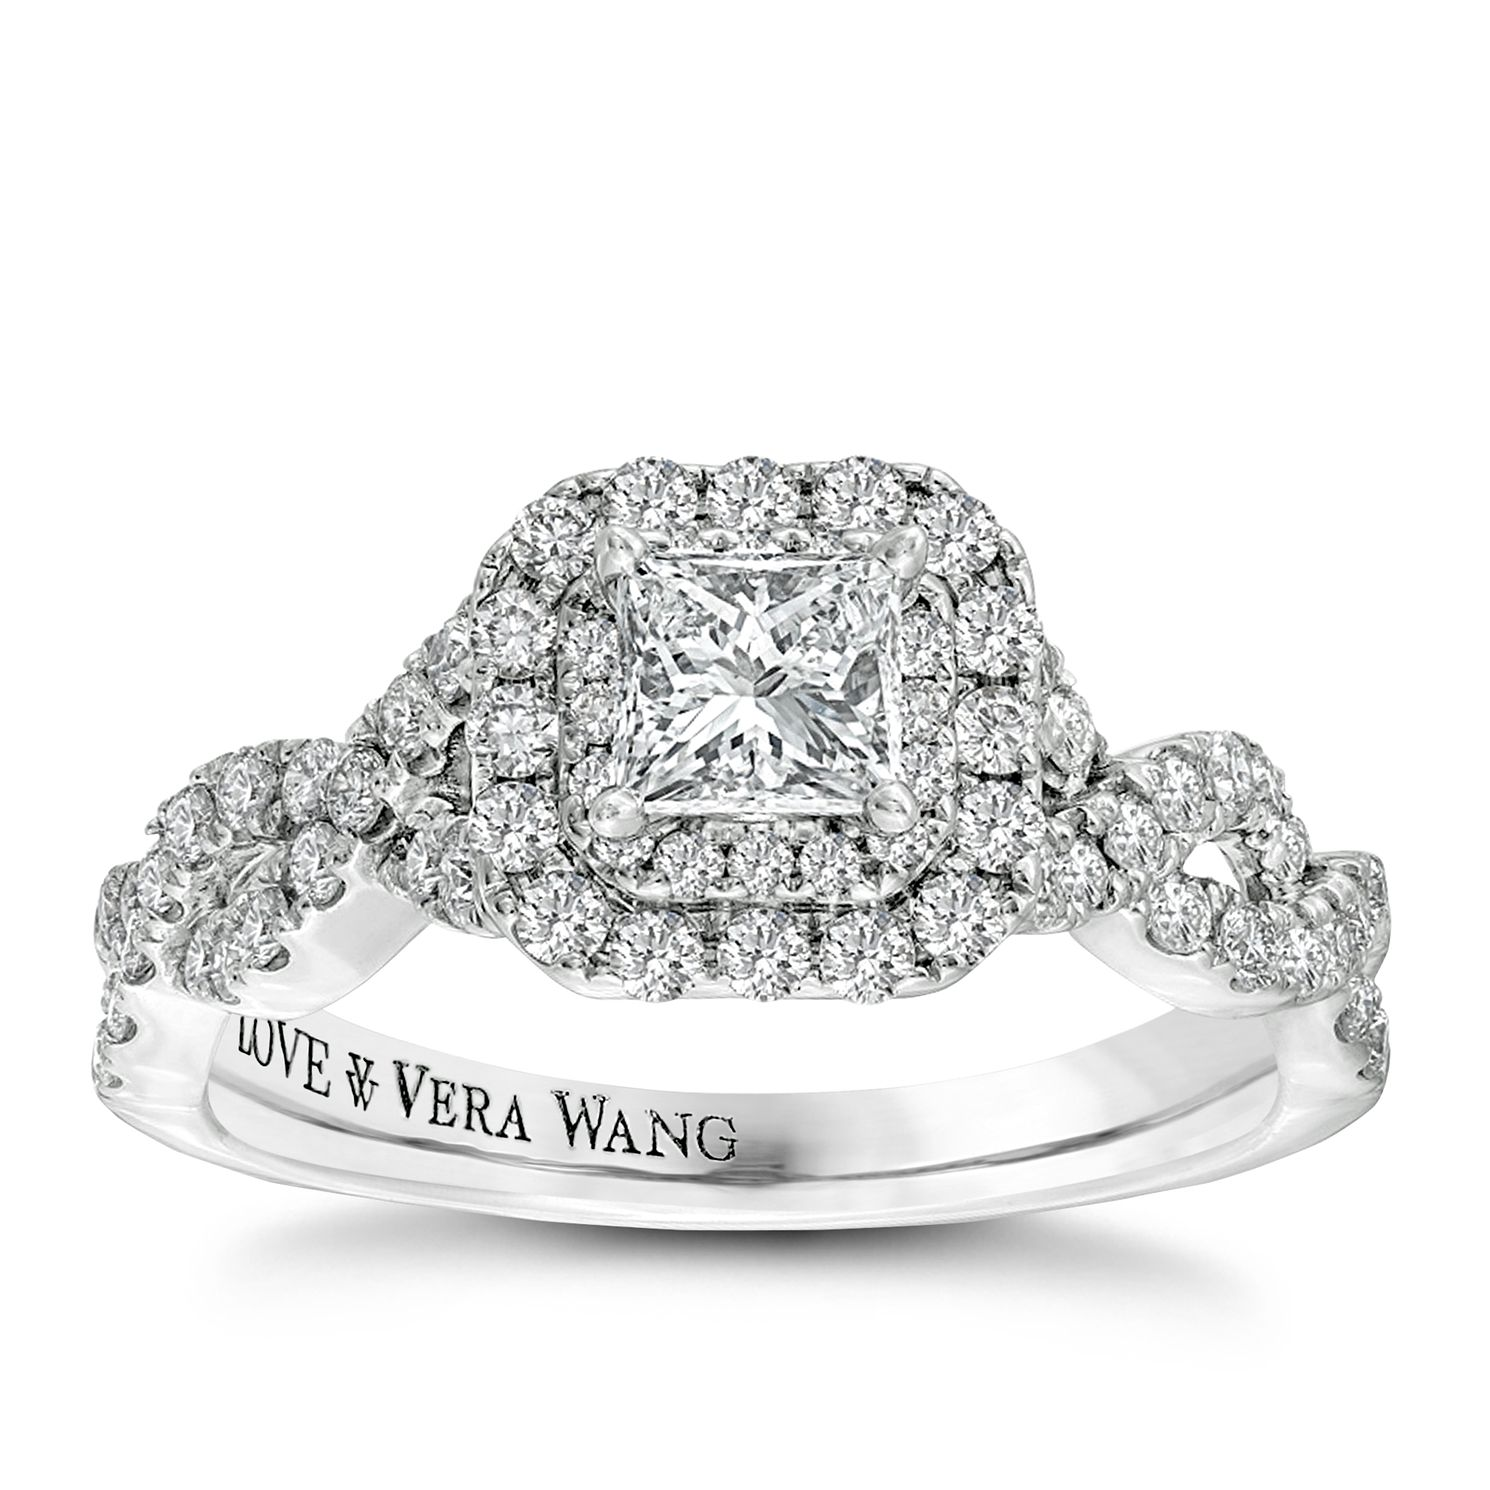 rings wedding awesome best sapphire ring photo the for love bride engagement vera planning wang